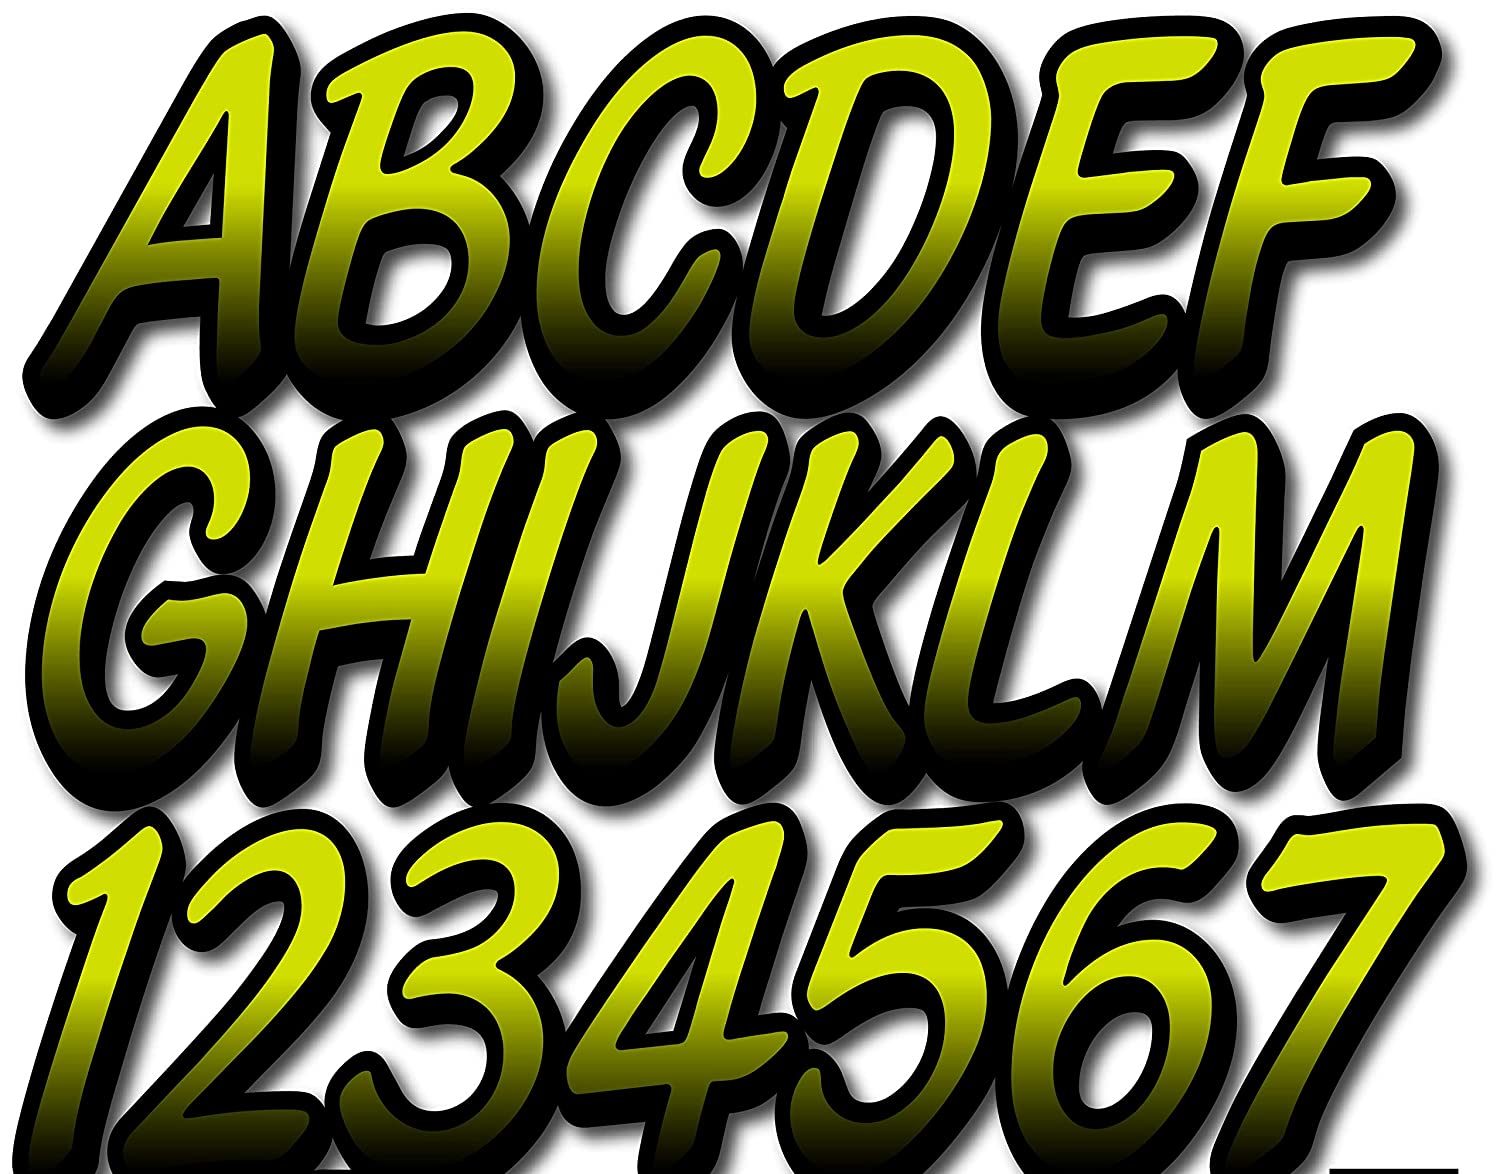 Stiffie Whipline Electric Lime//Black 3 Alpha-Numeric Registration Identification Numbers Stickers Decals for Boats /& Personal Watercraft